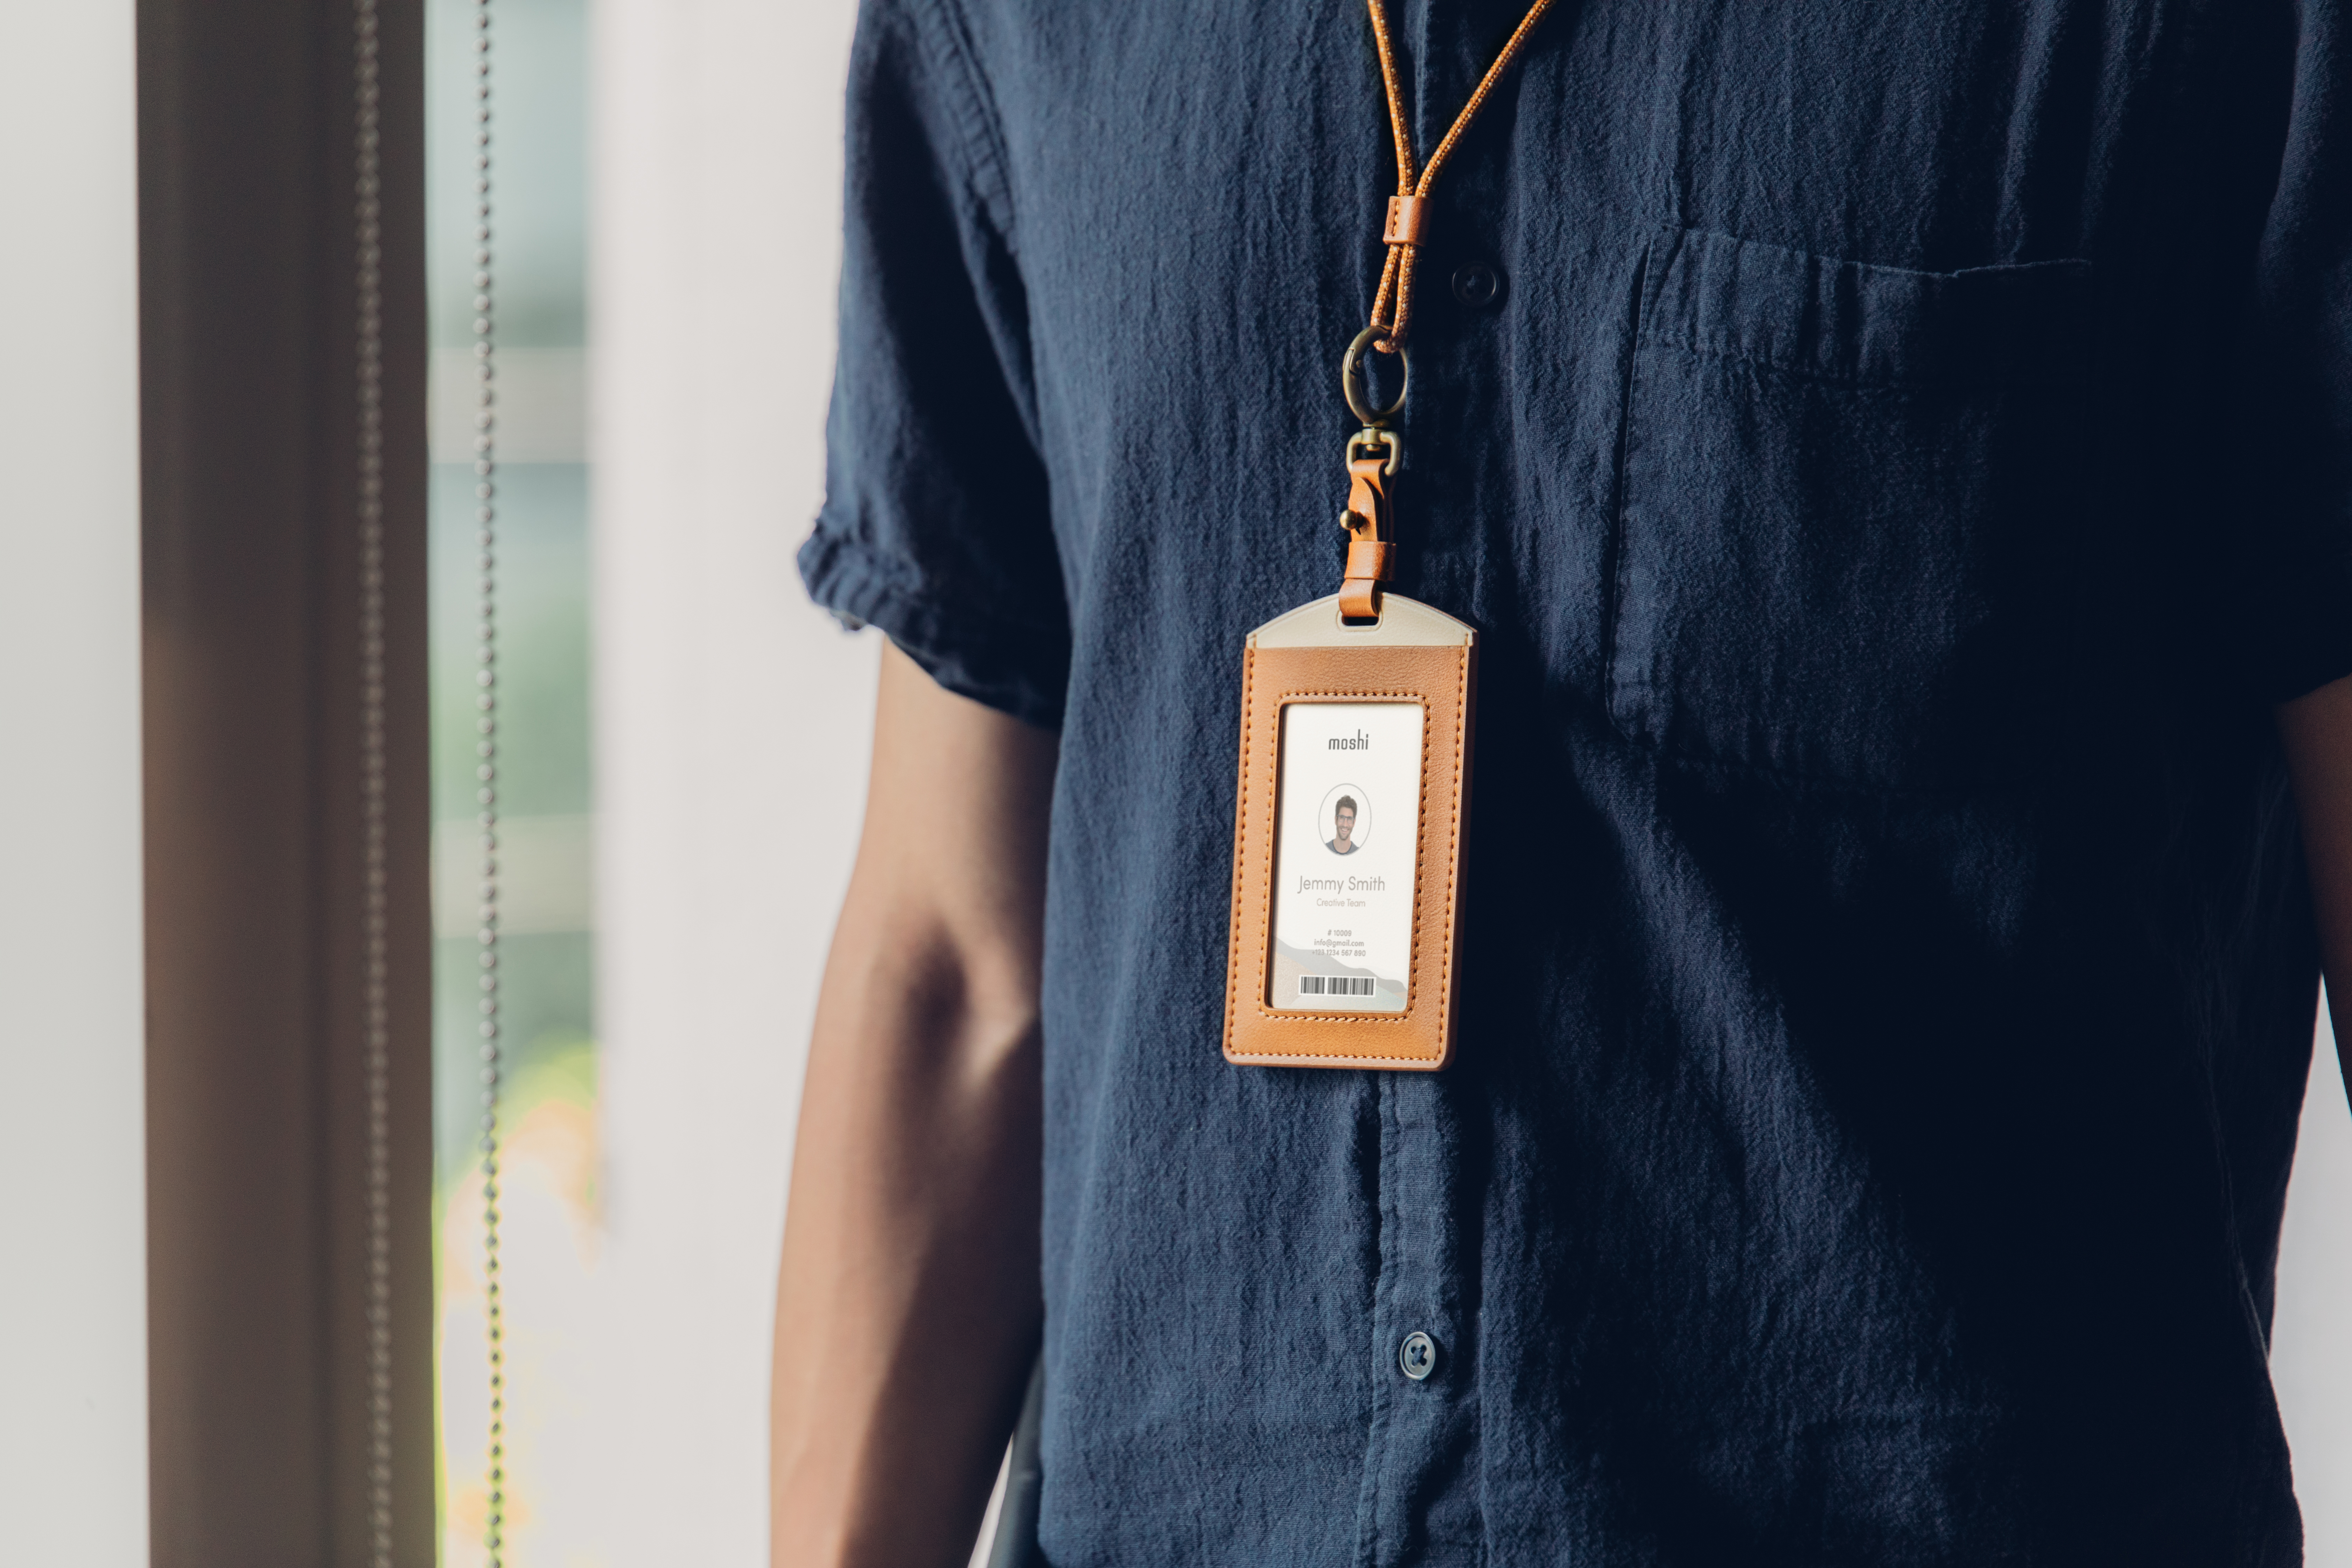 An office worker with a Moshi Dual-sided badge holder around their neck, office ID is visible in the holder